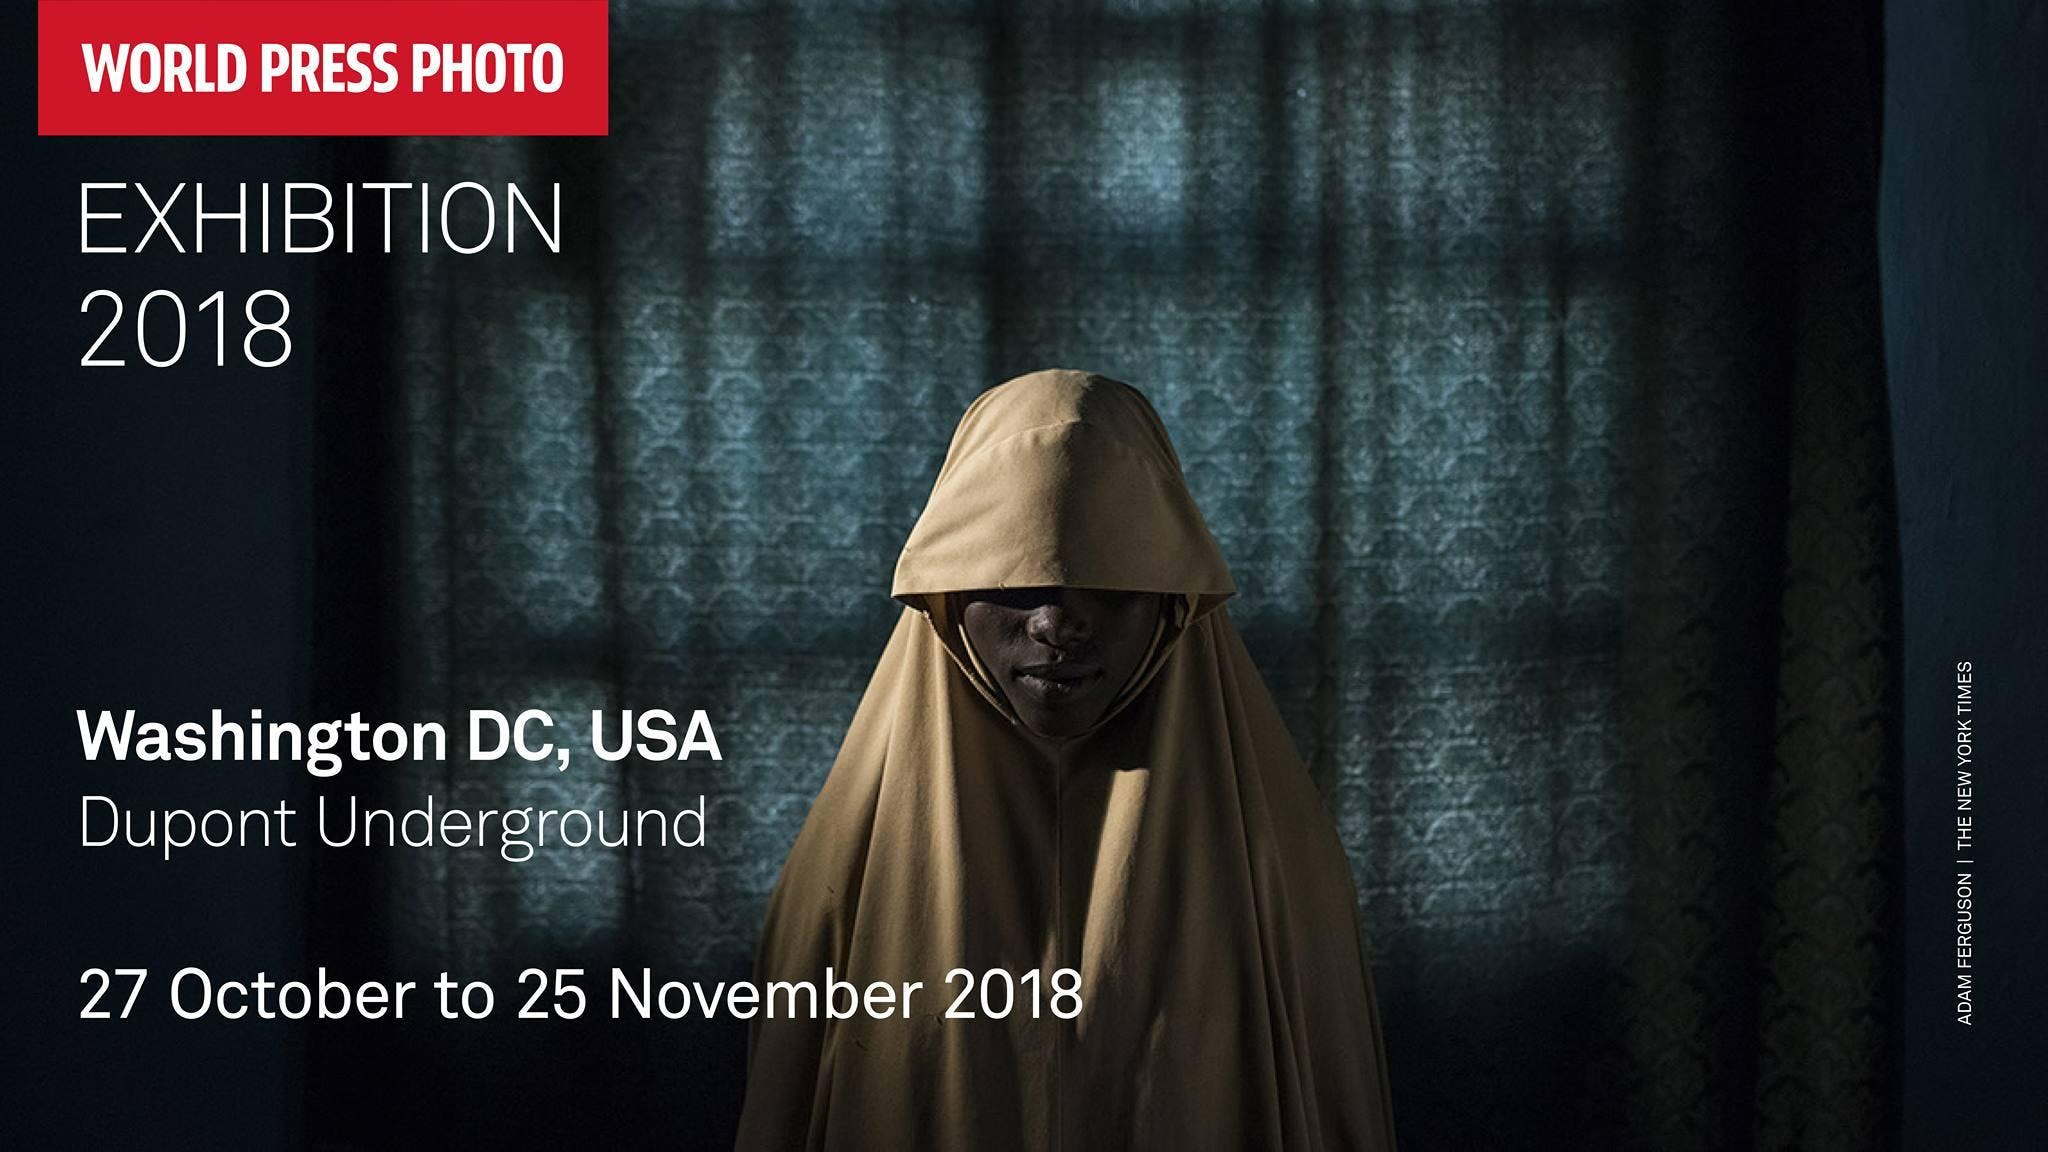 World Press Photo Exhibition 2018: The year's best photography & arts festival